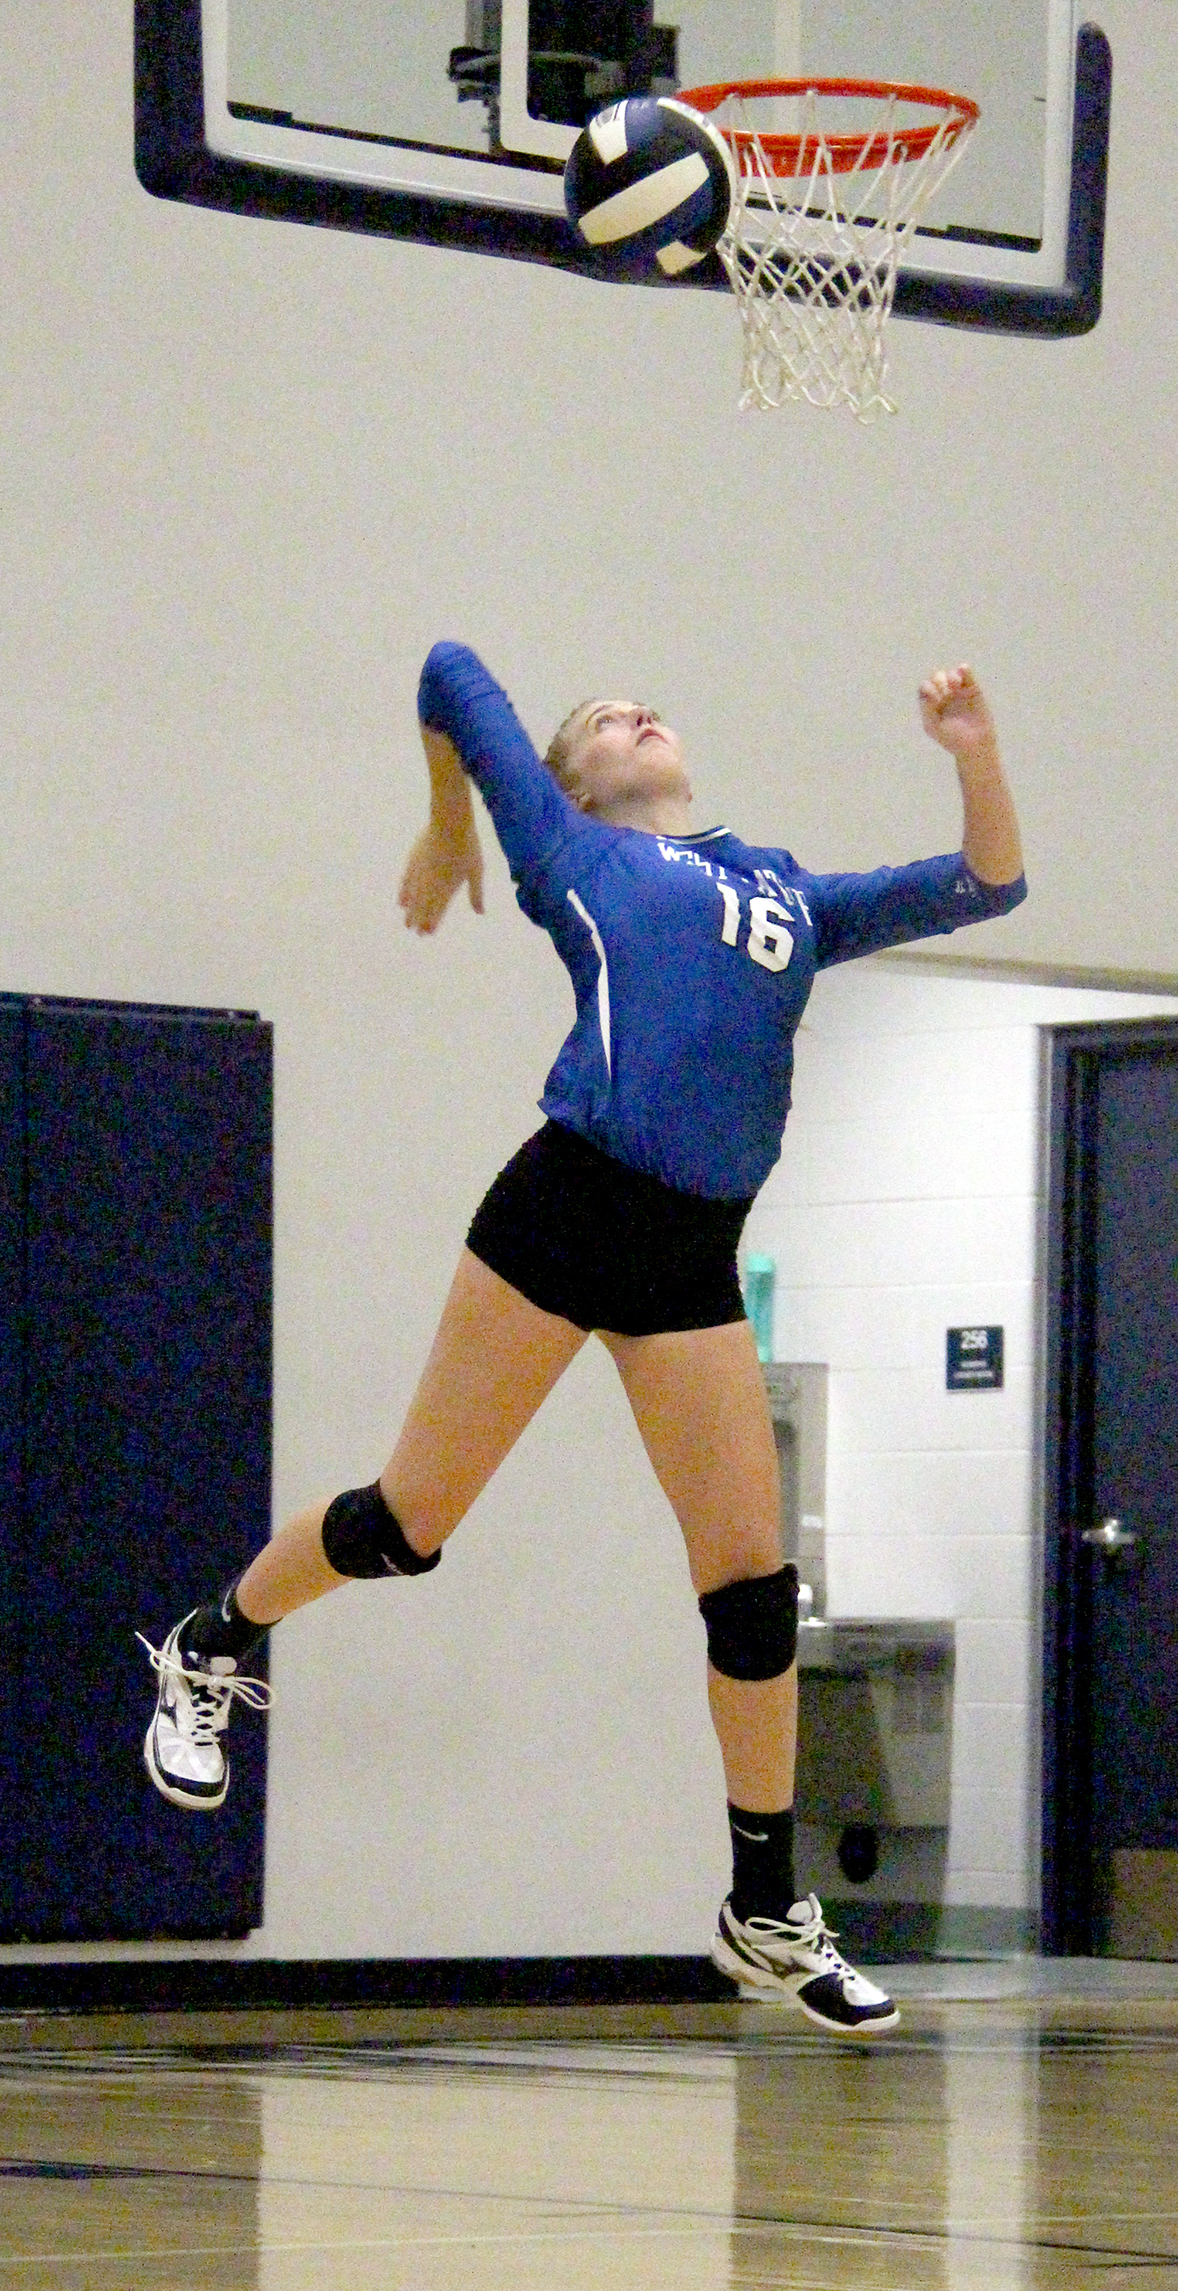 ROSS MARTIN/Citizen photo West Platte senior setter Megan Kottman hits a serve during the Bluejays' 2-1 win against East Buchanan on Thursday, Sept. 1 at West Platte High School in Weston, Mo.